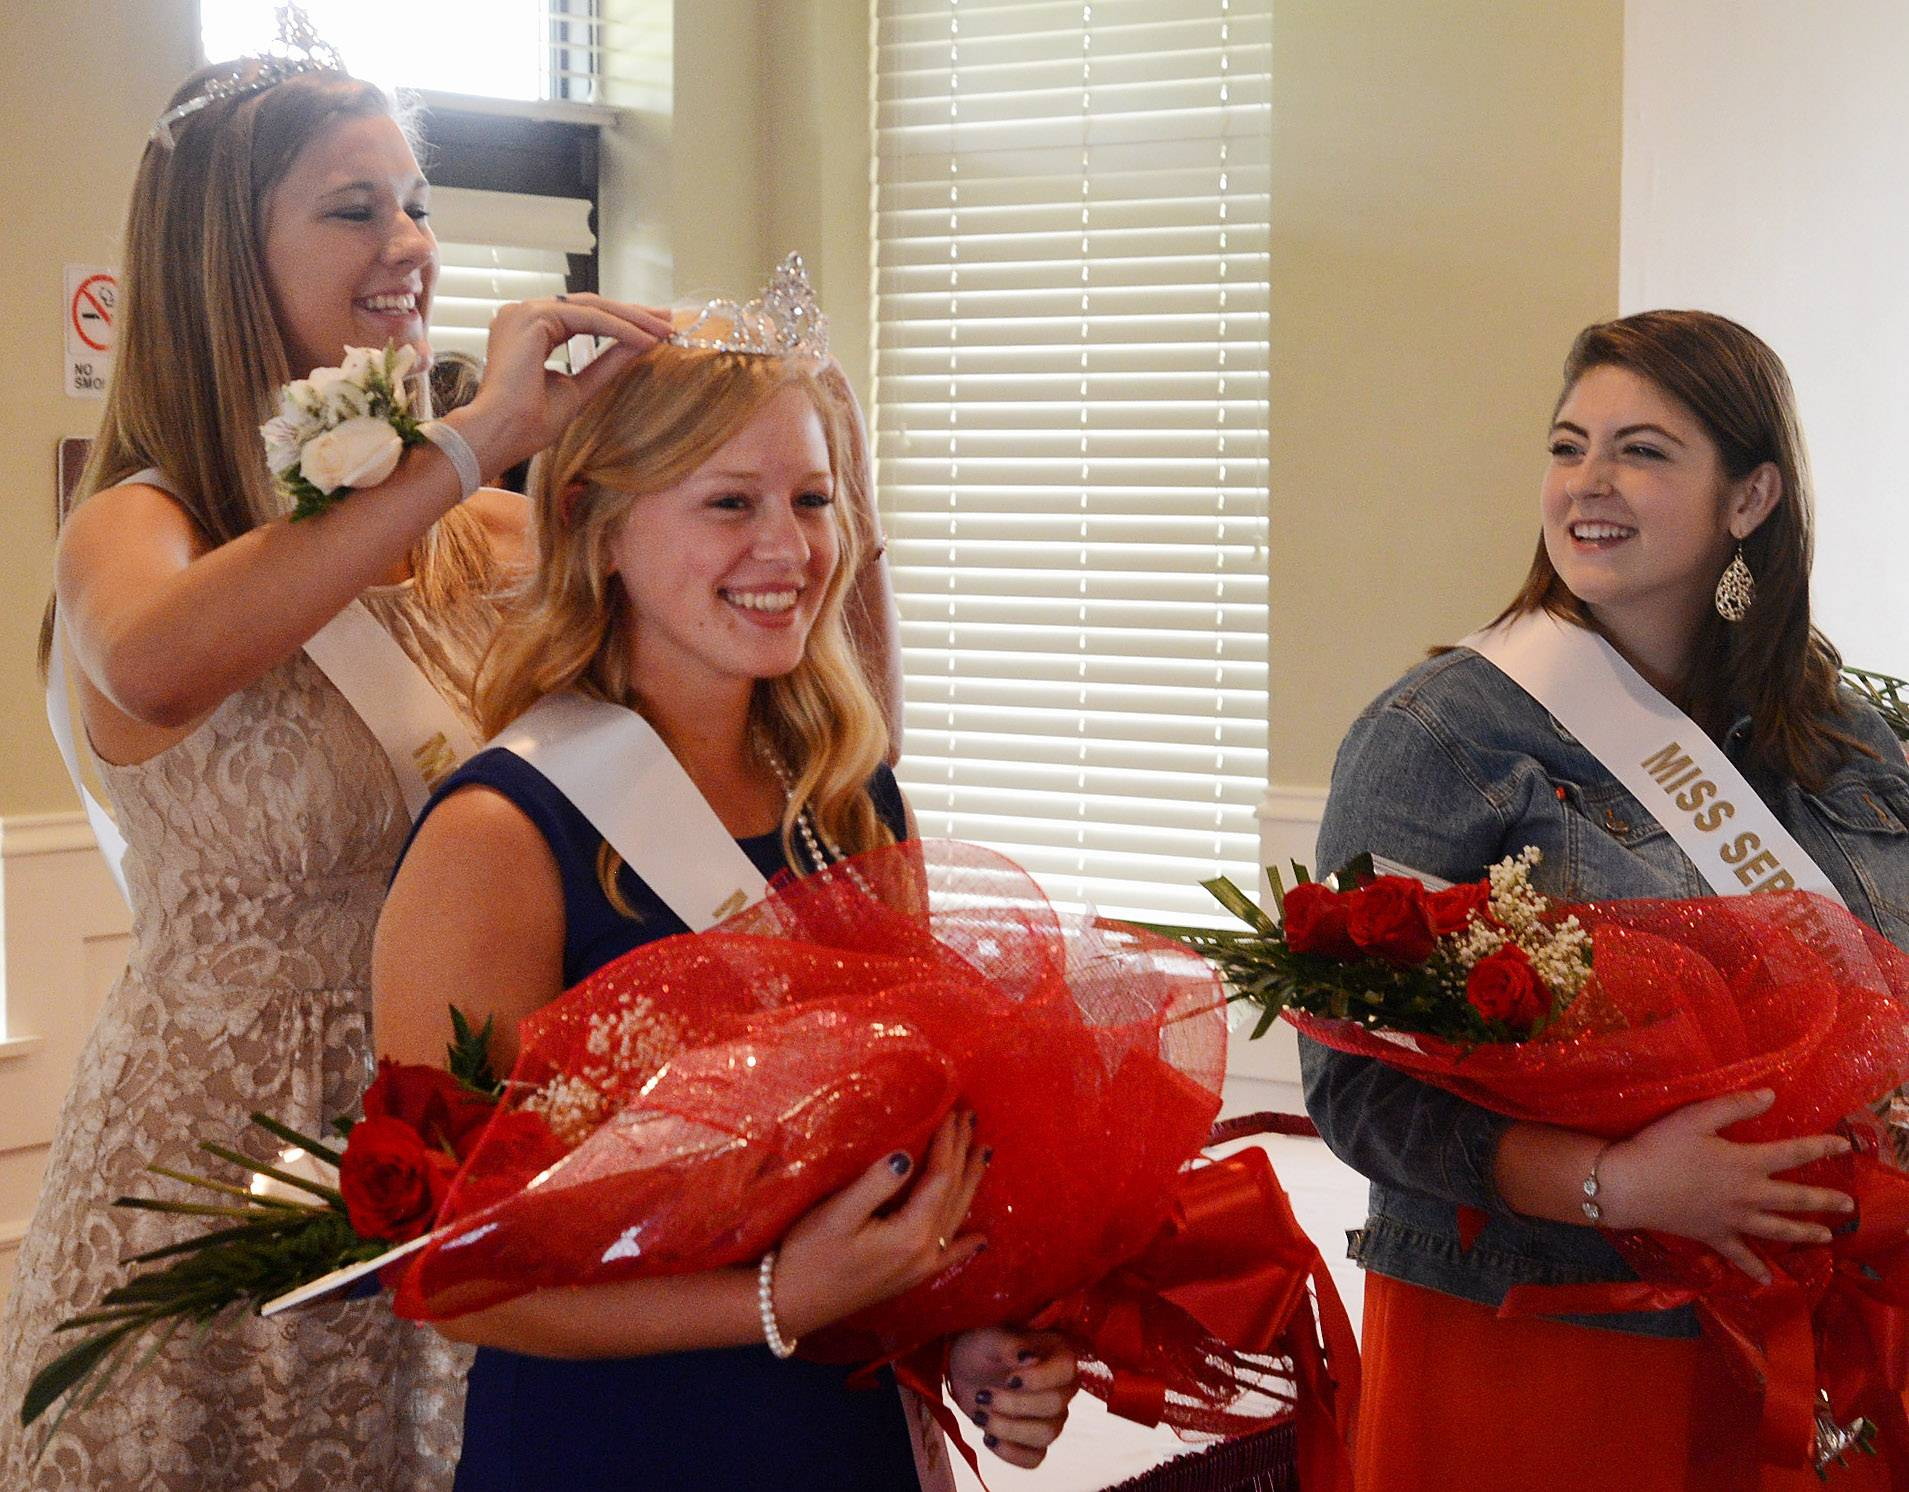 Carly Bryeans, 17, of Conant High School is crowned Schaumburg's Miss Septemberfest 2014 by last year's Miss Septemberfest, Laura Sue Jensen, 19, of North Central College in Naperville. Runner-up Carolyn Byrne is on the right.